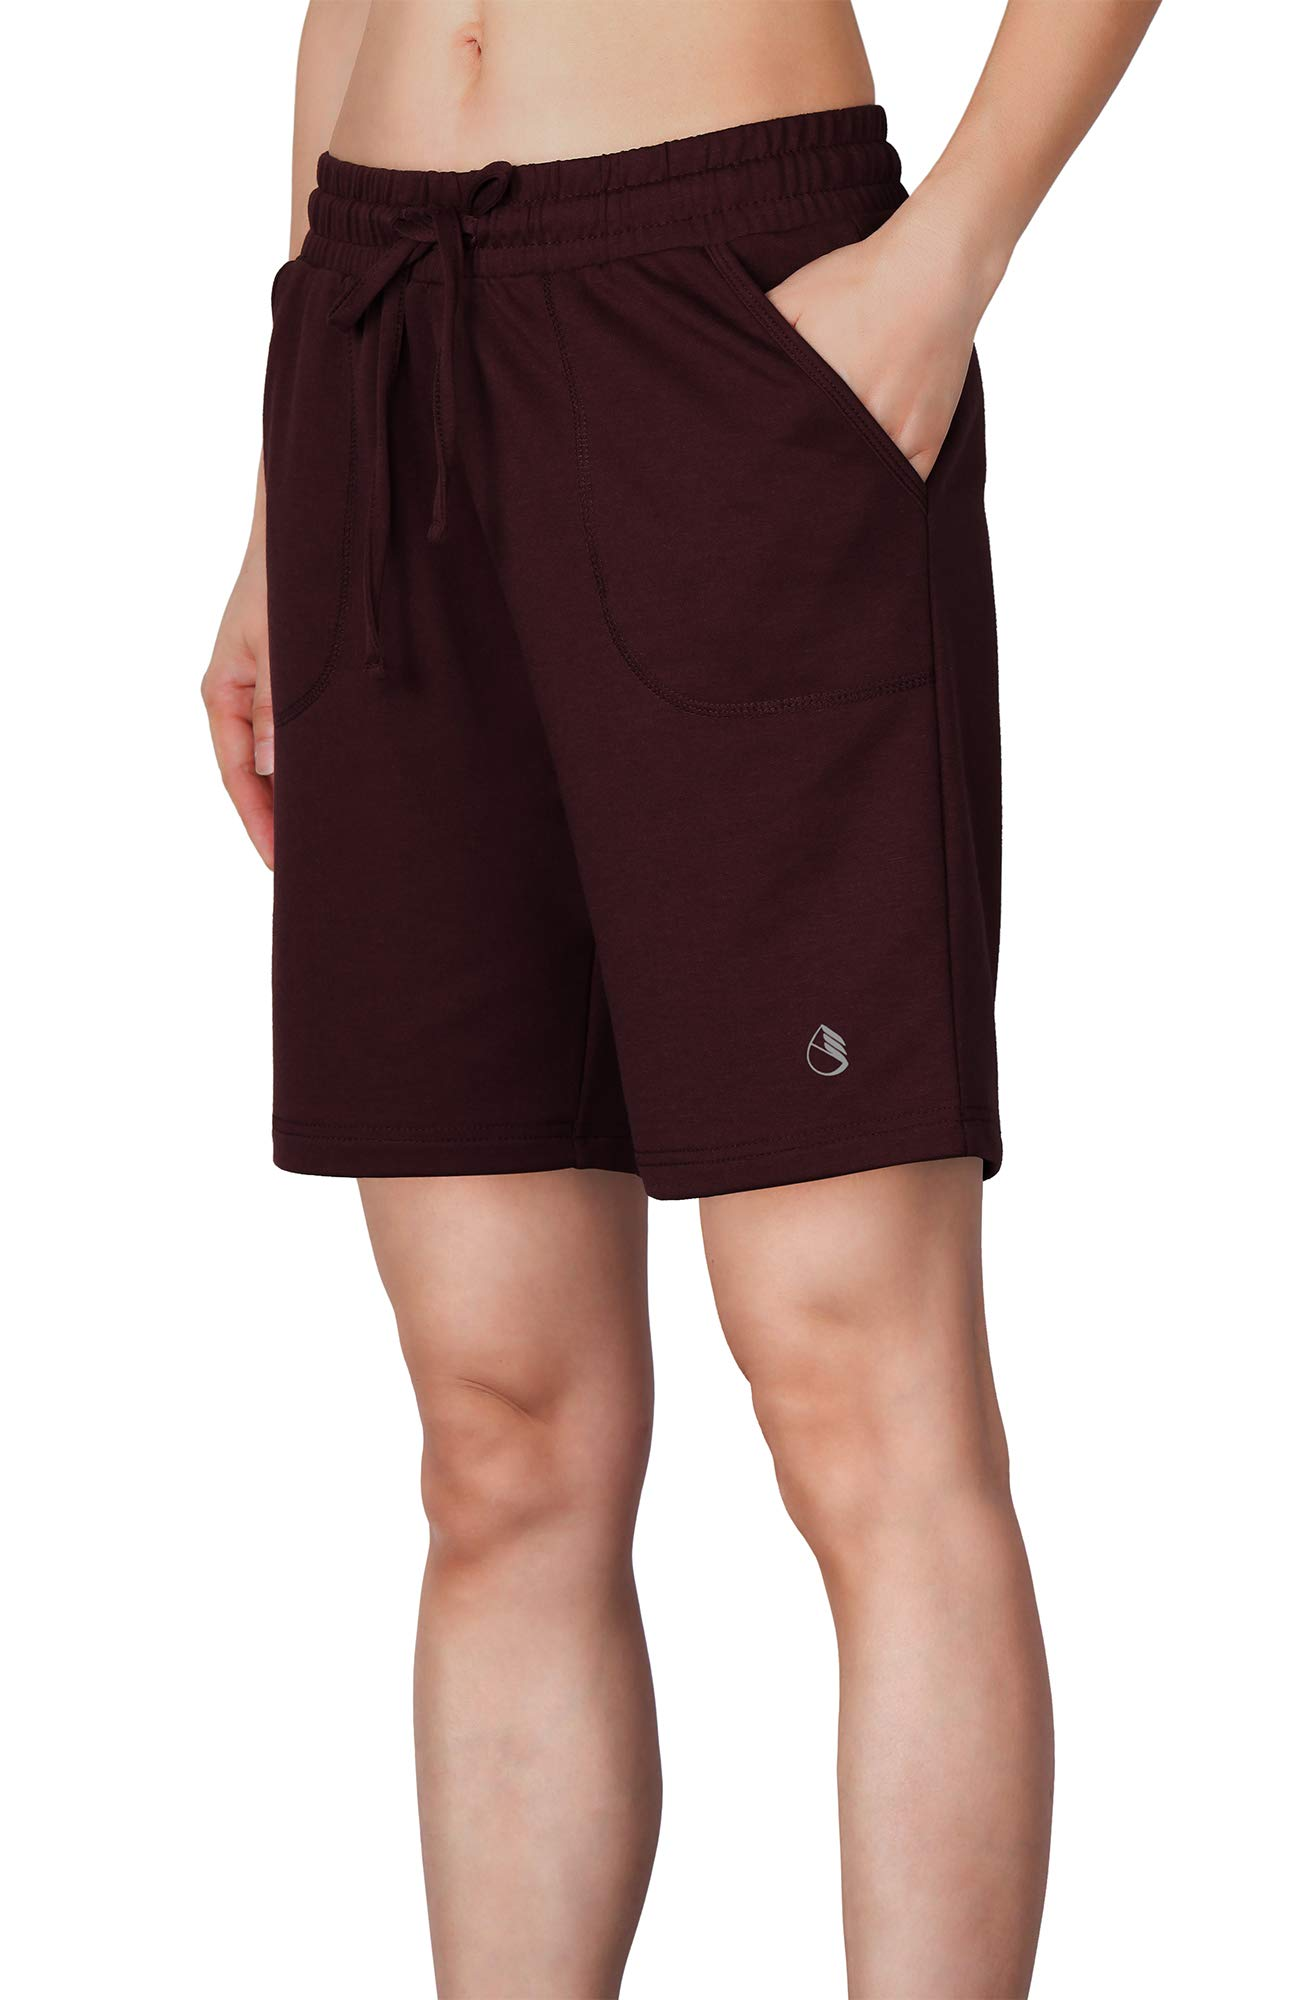 icyzone AthleticRunning Yoga Shorts for Women - Women's Workout Active Lounge Bermuda Shorts with Pockets